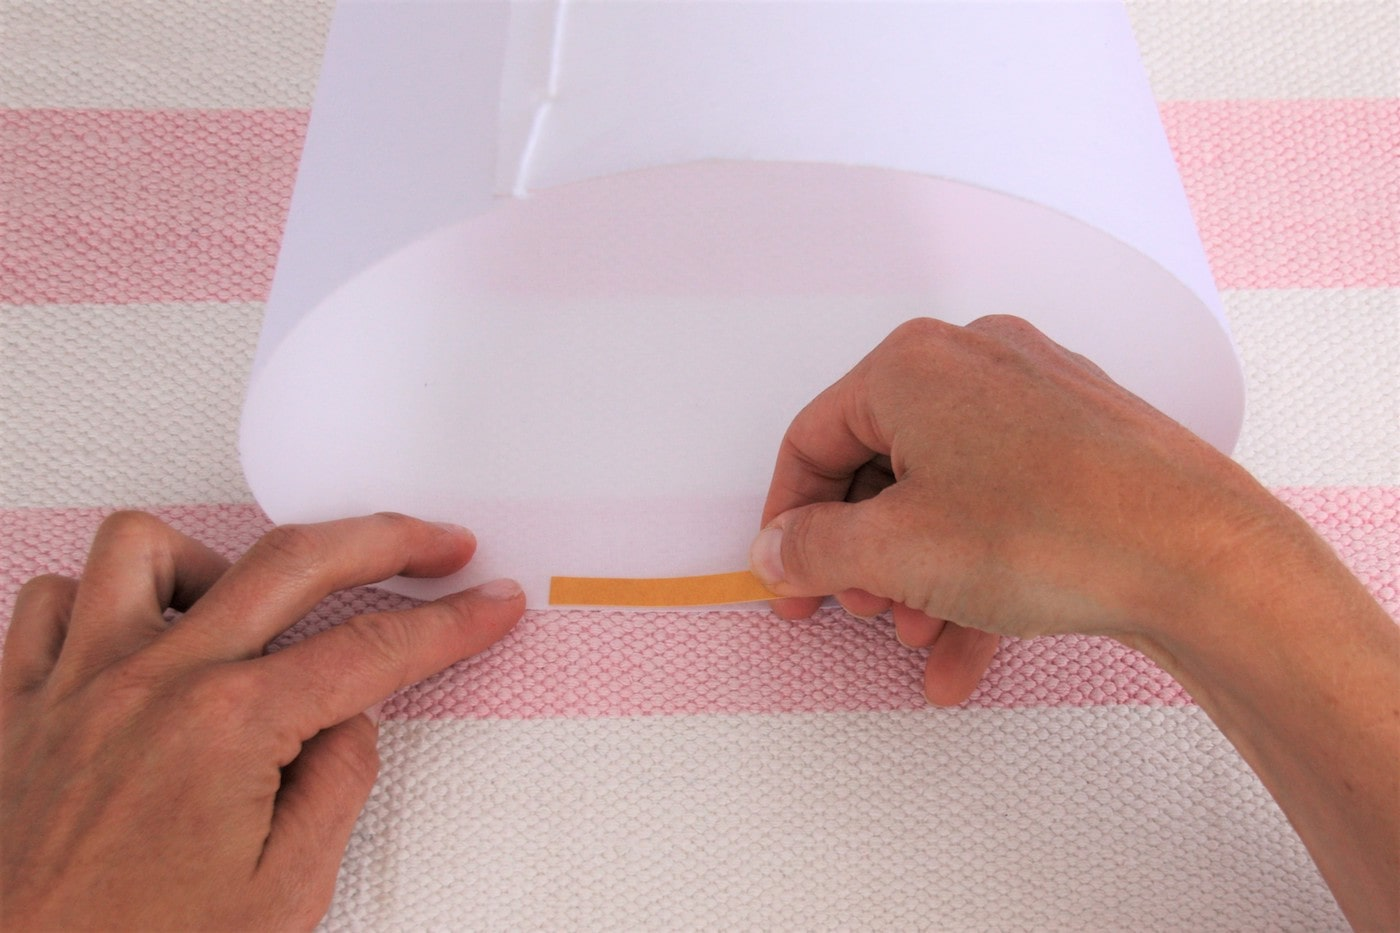 Lay the school bag blank with adhesive tape